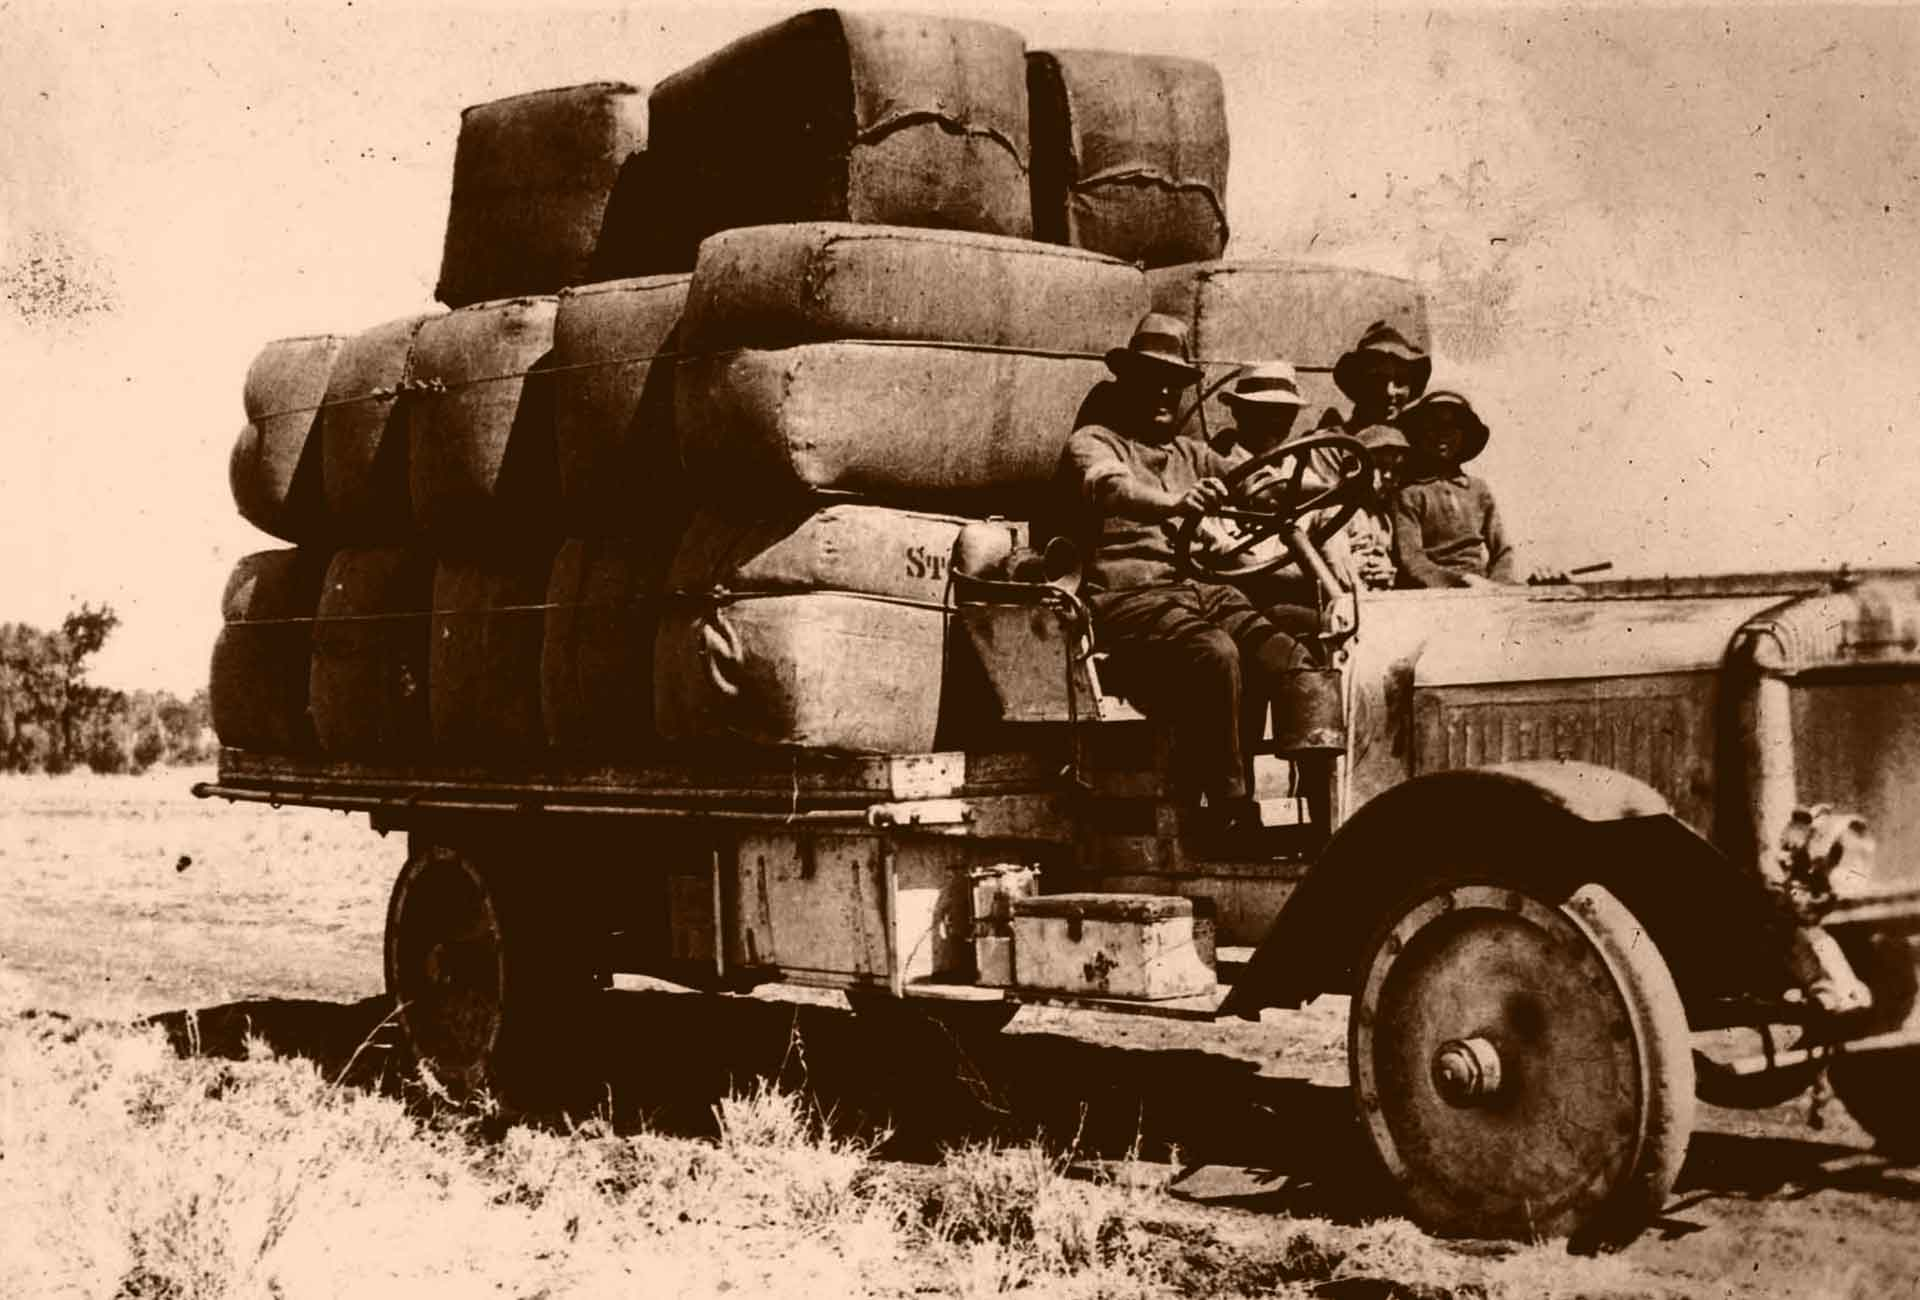 Ackroyd and Dadswell - Wool Truck